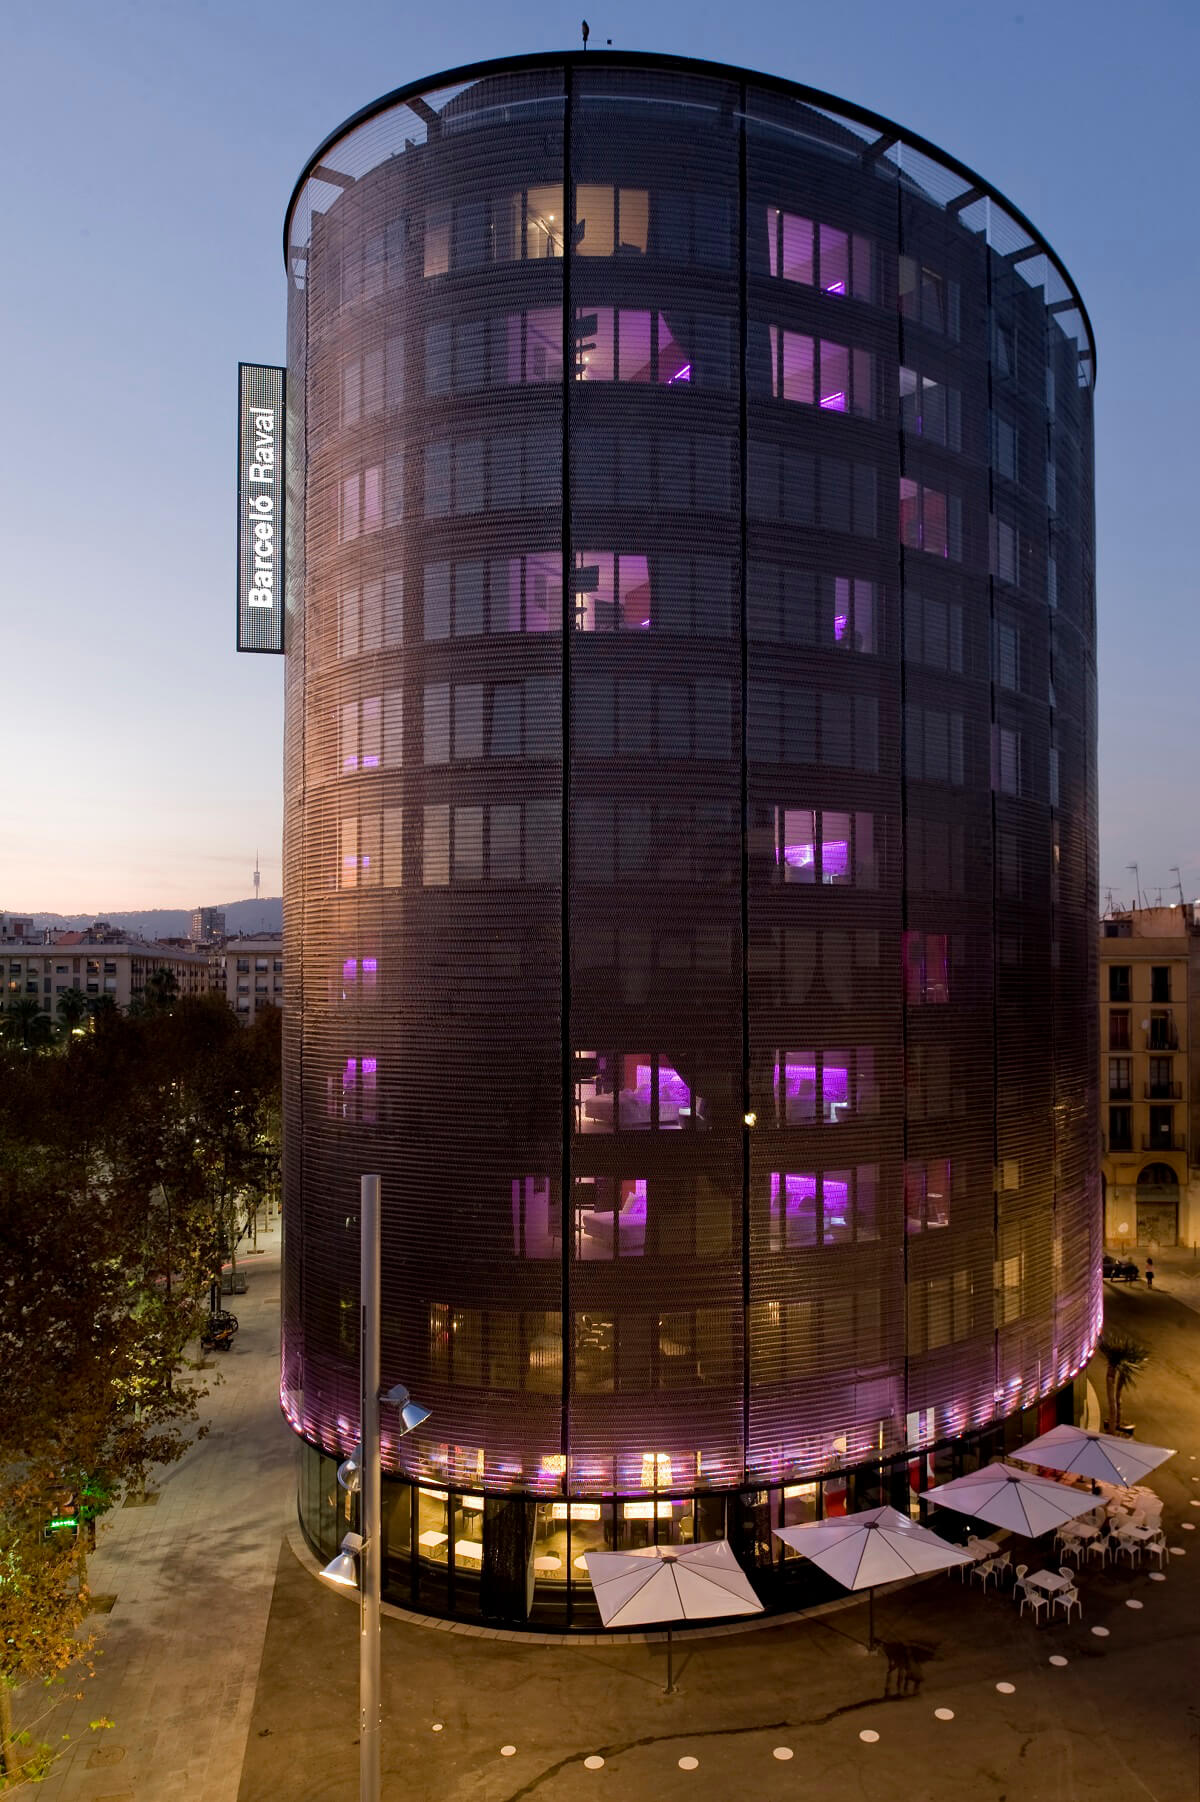 Exterior view of the oval hotel raval tower with details inside the lilac rooms at night